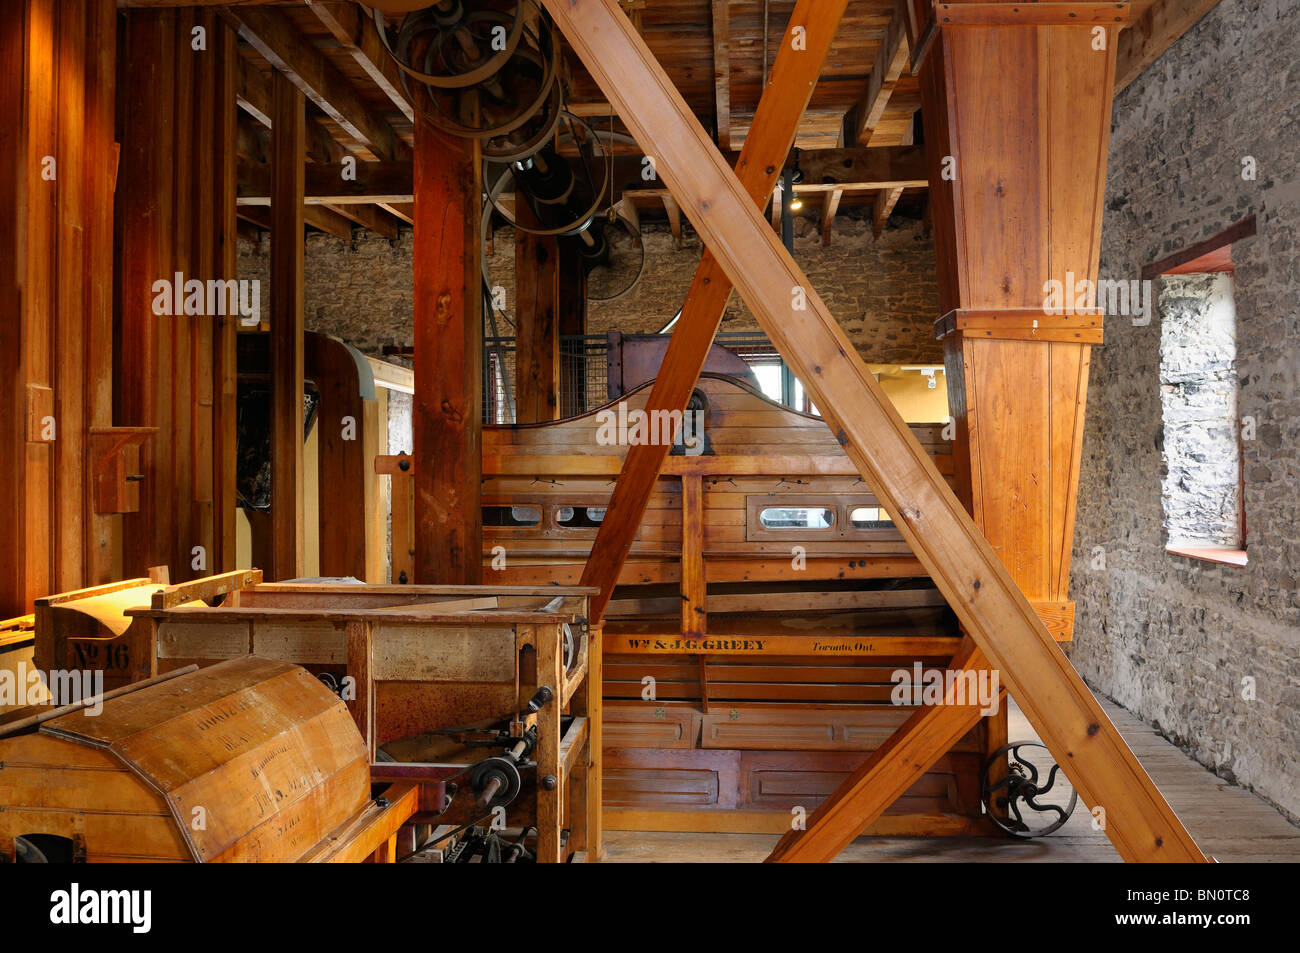 Interior of the Lang Grist Mill at Pioneer Village on the Indian River Ontario - Stock Image